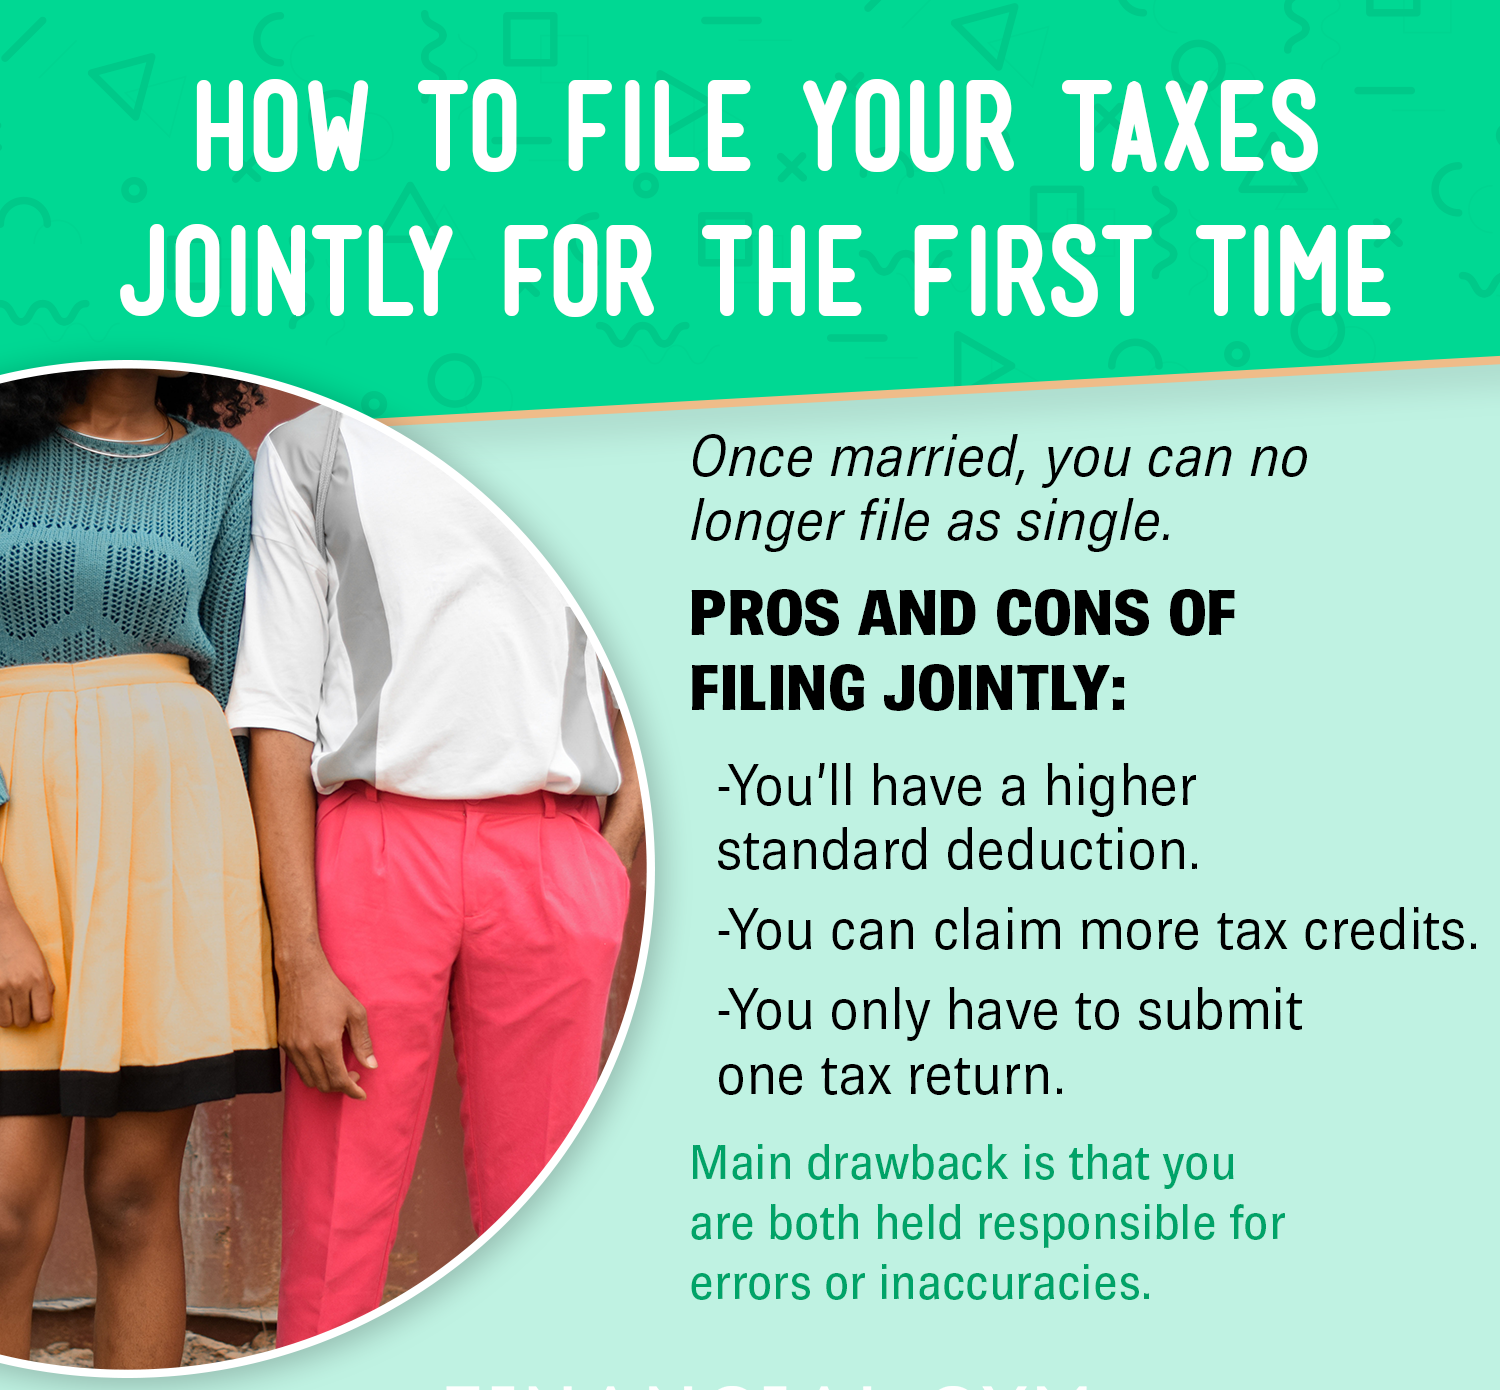 Married and filing taxes individually